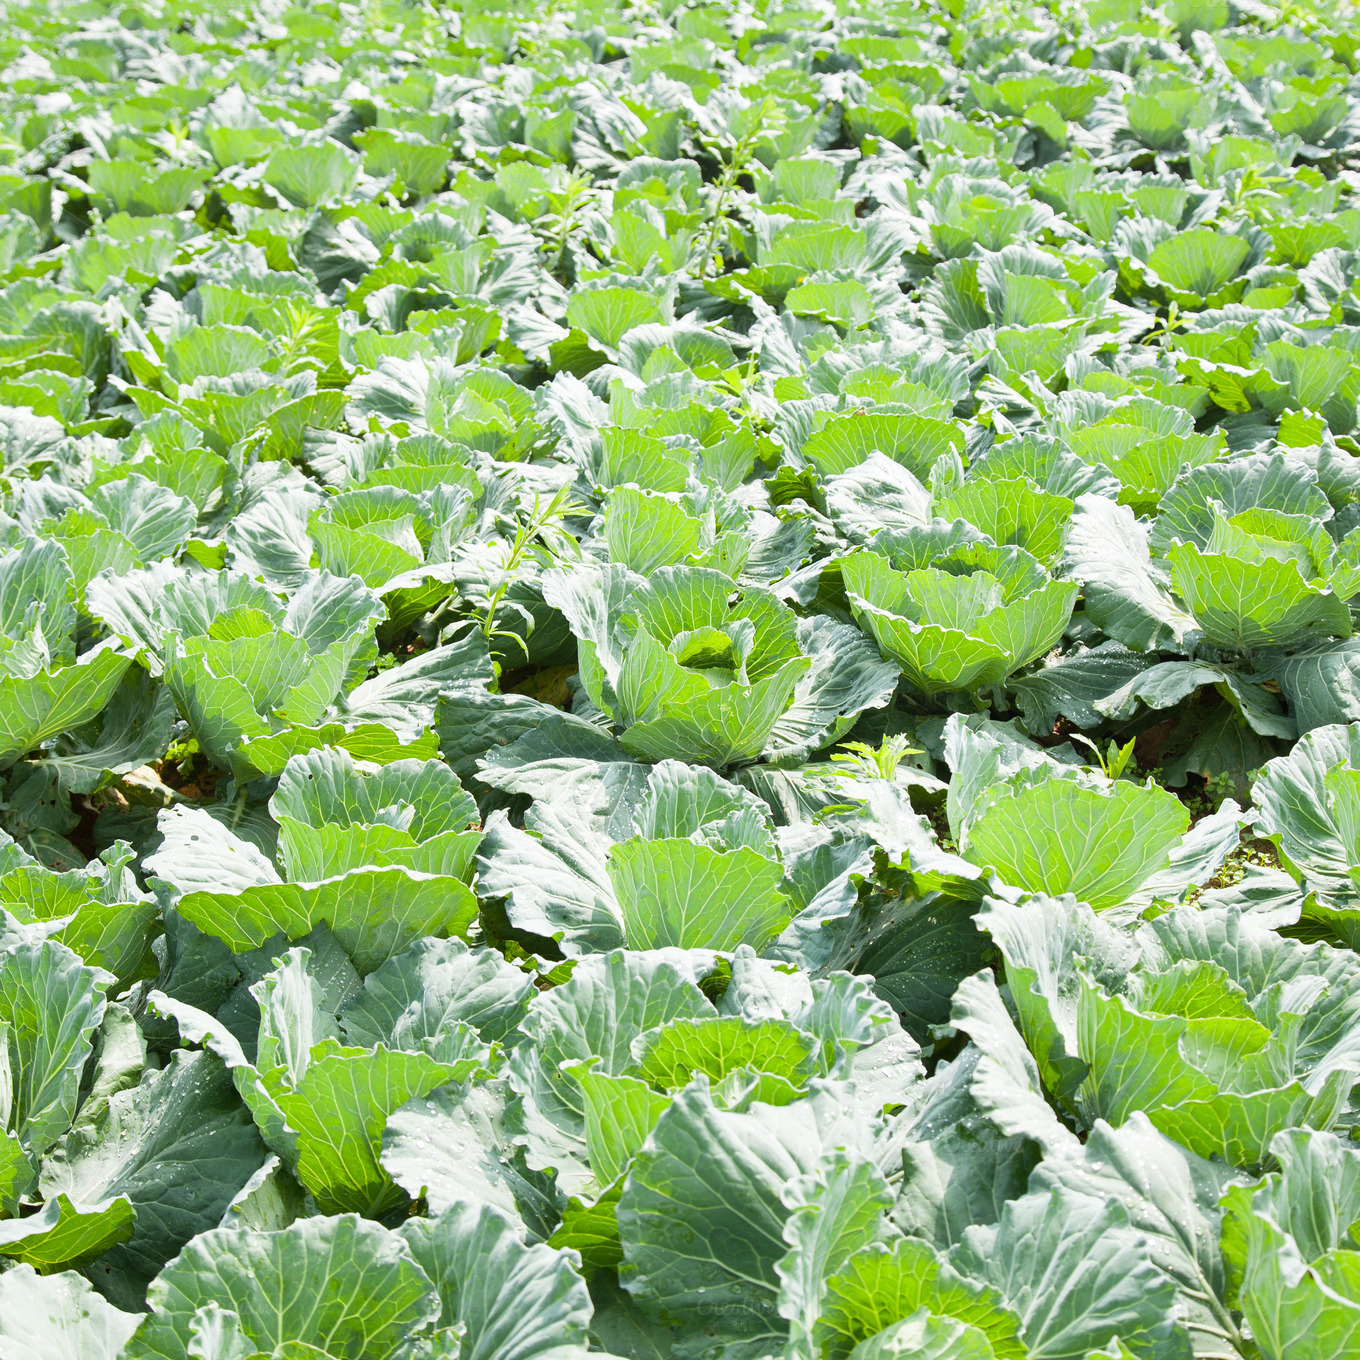 agri sba cabbage production Cabbage farming guide: cabbage farming introduction of cabbage farming:- cabbage is one of the most popular vegetables in the world because of its adaptability to a wide range of climatic conditions and soil types, ease of production and storage, and its food valuecabbage is believed to have evolved from a wild form native to europe, growing along the coast of the north sea, the english.